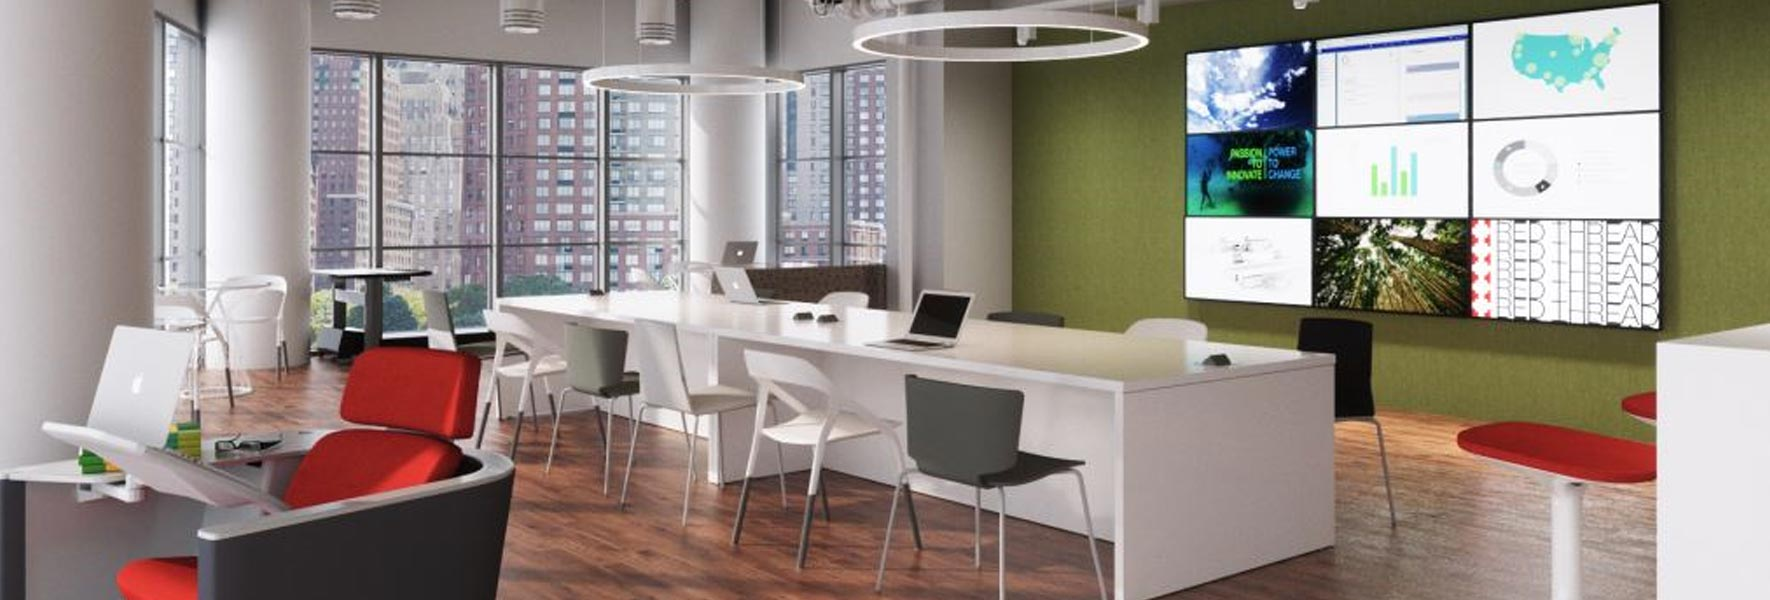 office interior rendering showing office furniture design capabilities